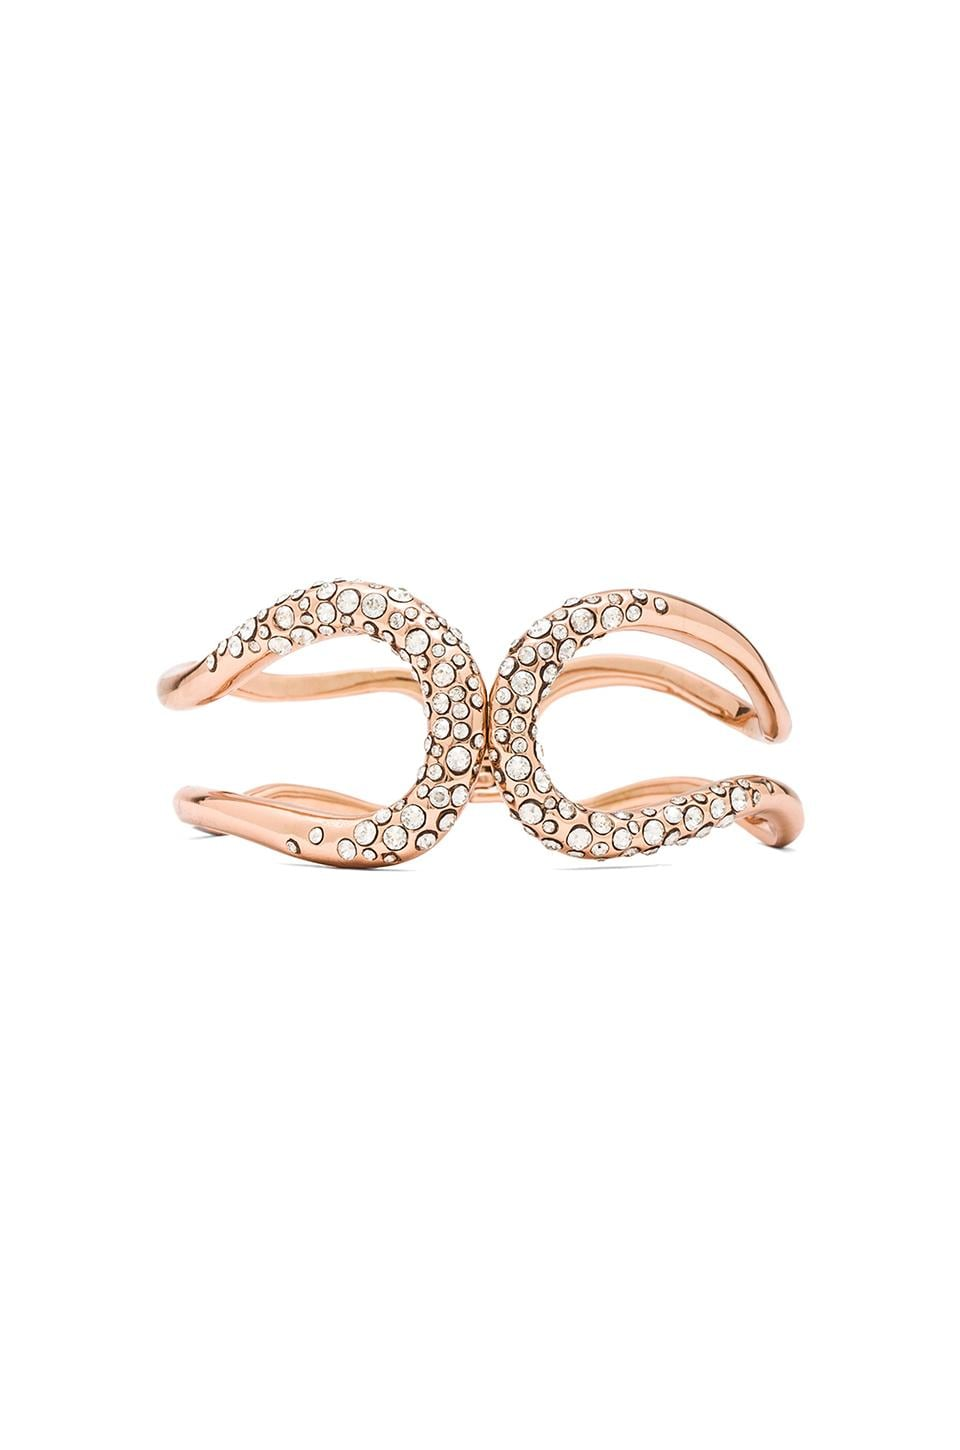 Alexis Bittar Crystal Encrusted Hinge Bracelet in Rose Gold